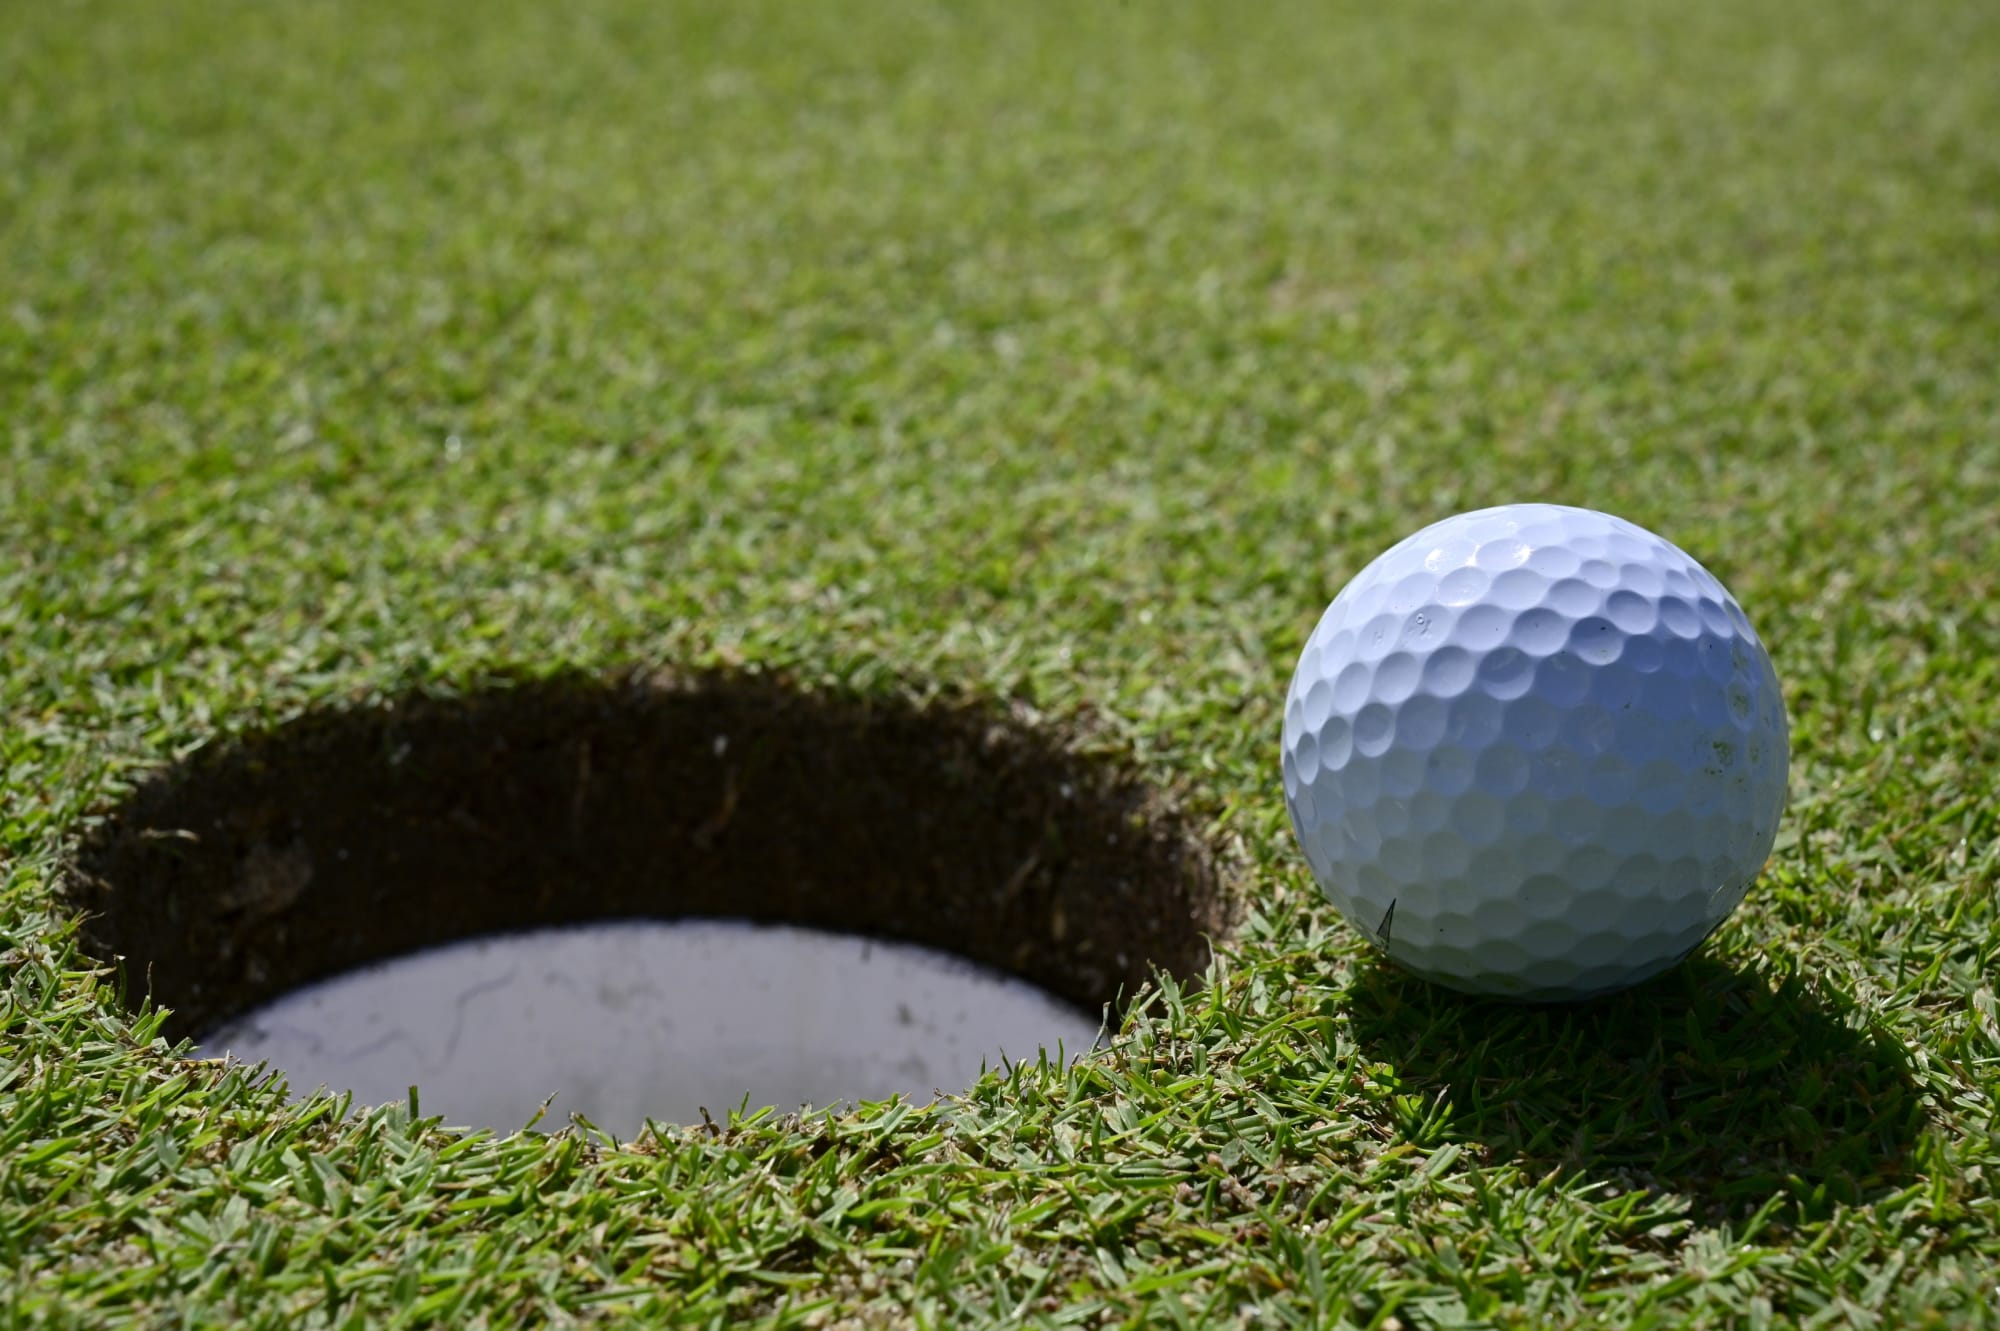 Arizona Athletics clinches Territorial Cup Series with Men's Golf victory